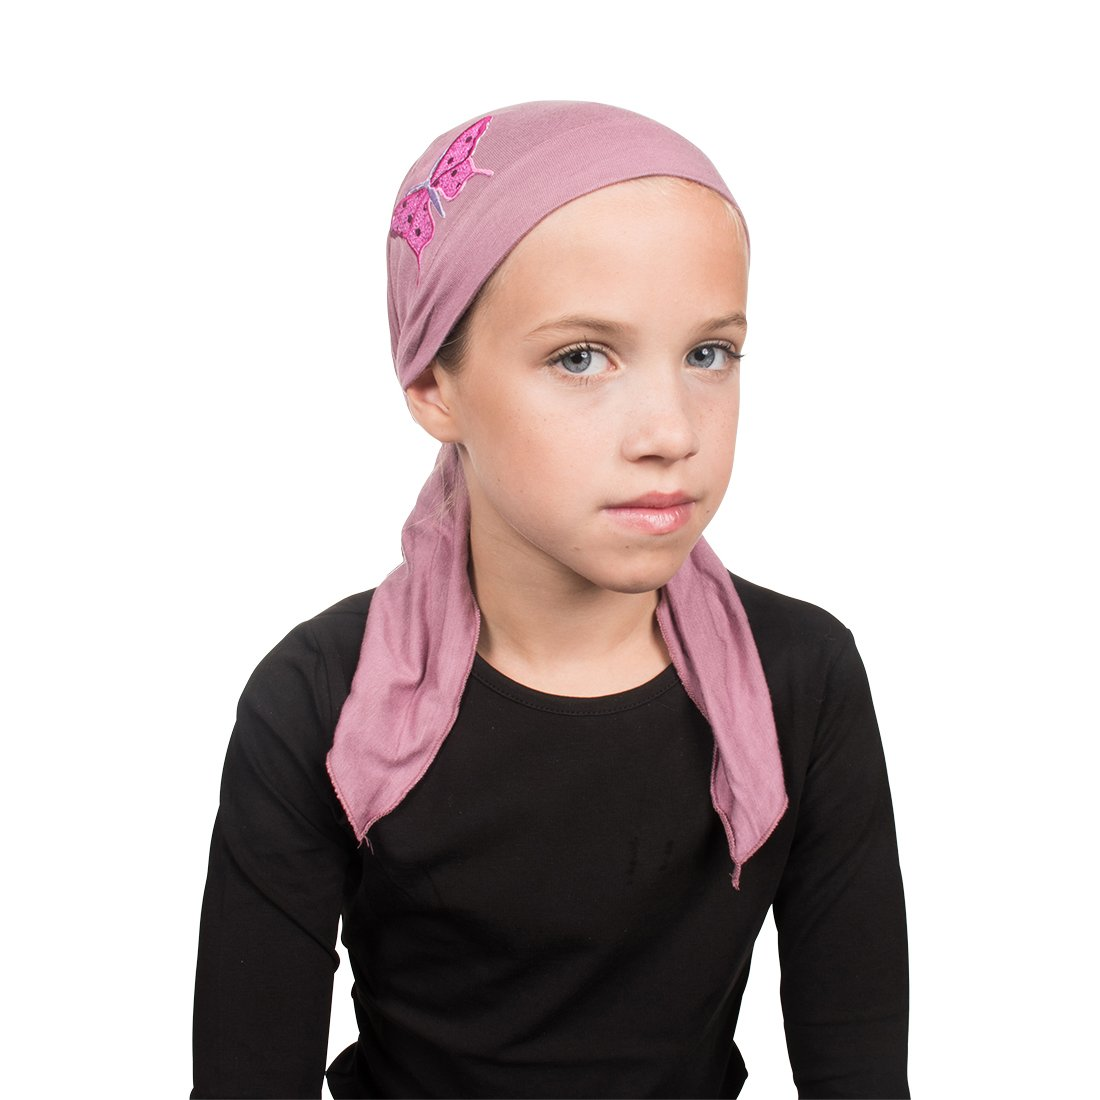 Sequin Butterfly Applique on Child's Pretied Head Scarf Cancer Cap - Rose